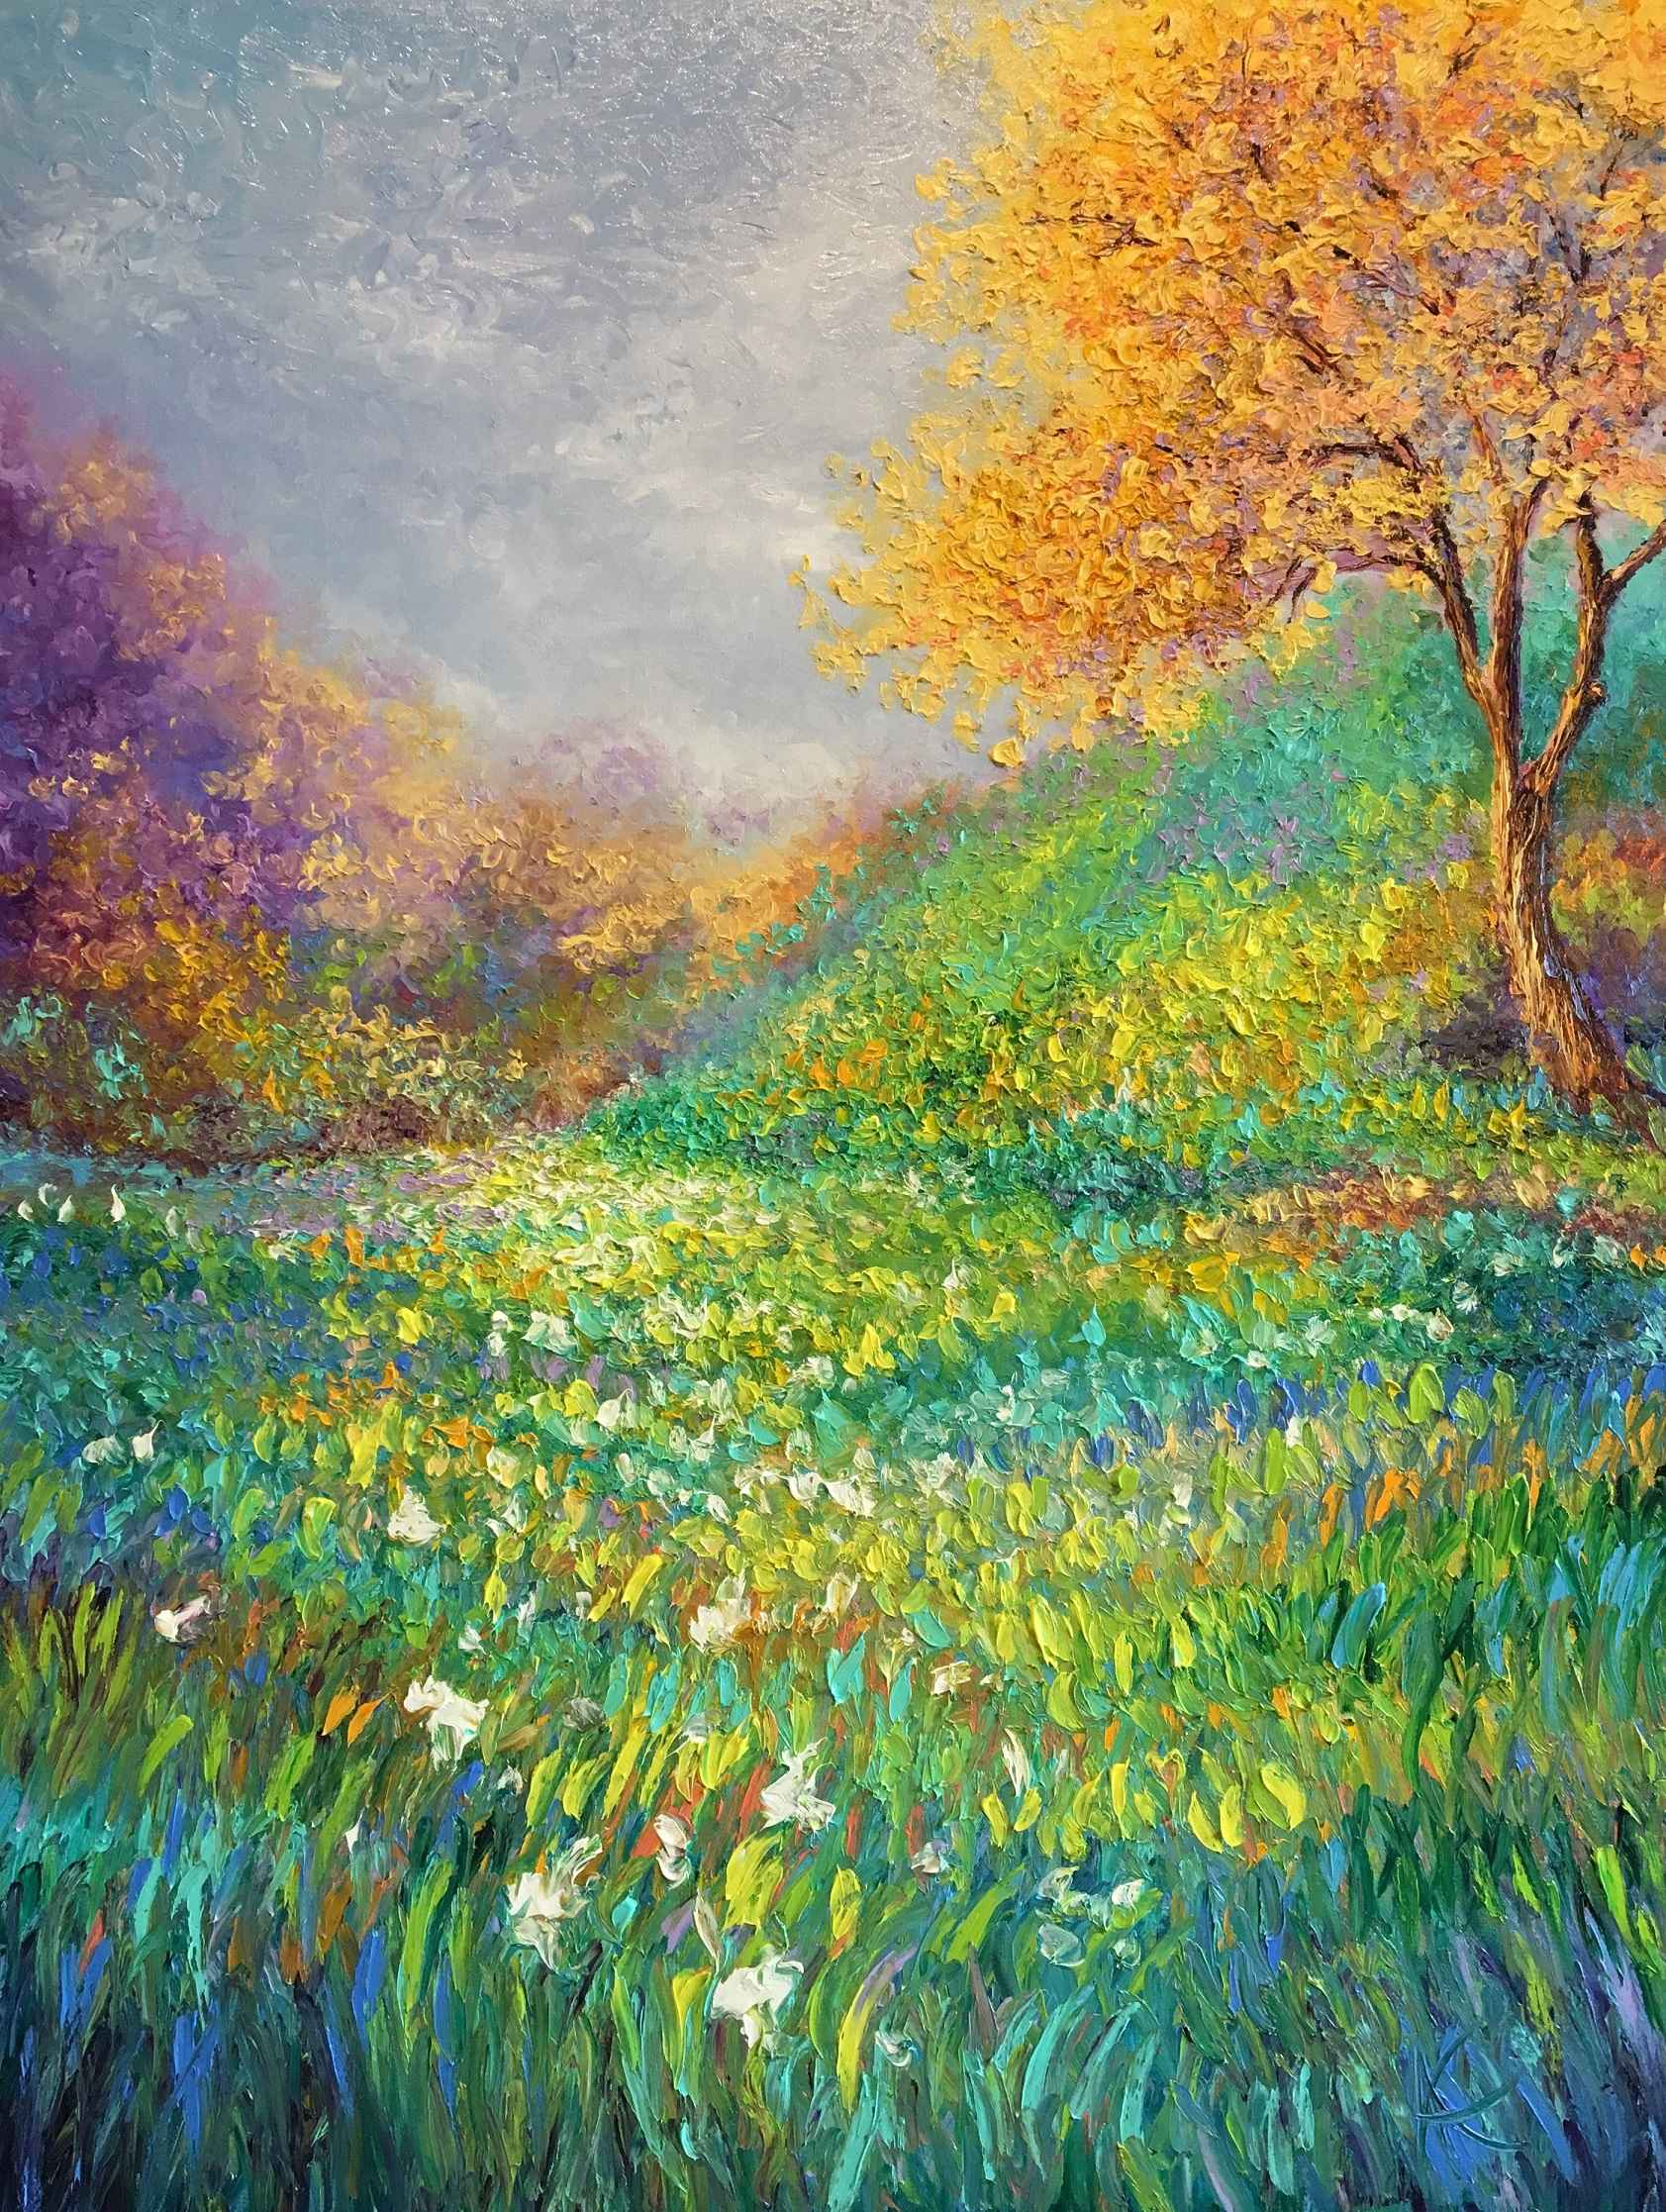 Field of Color by  Kimberly Adams - Masterpiece Online